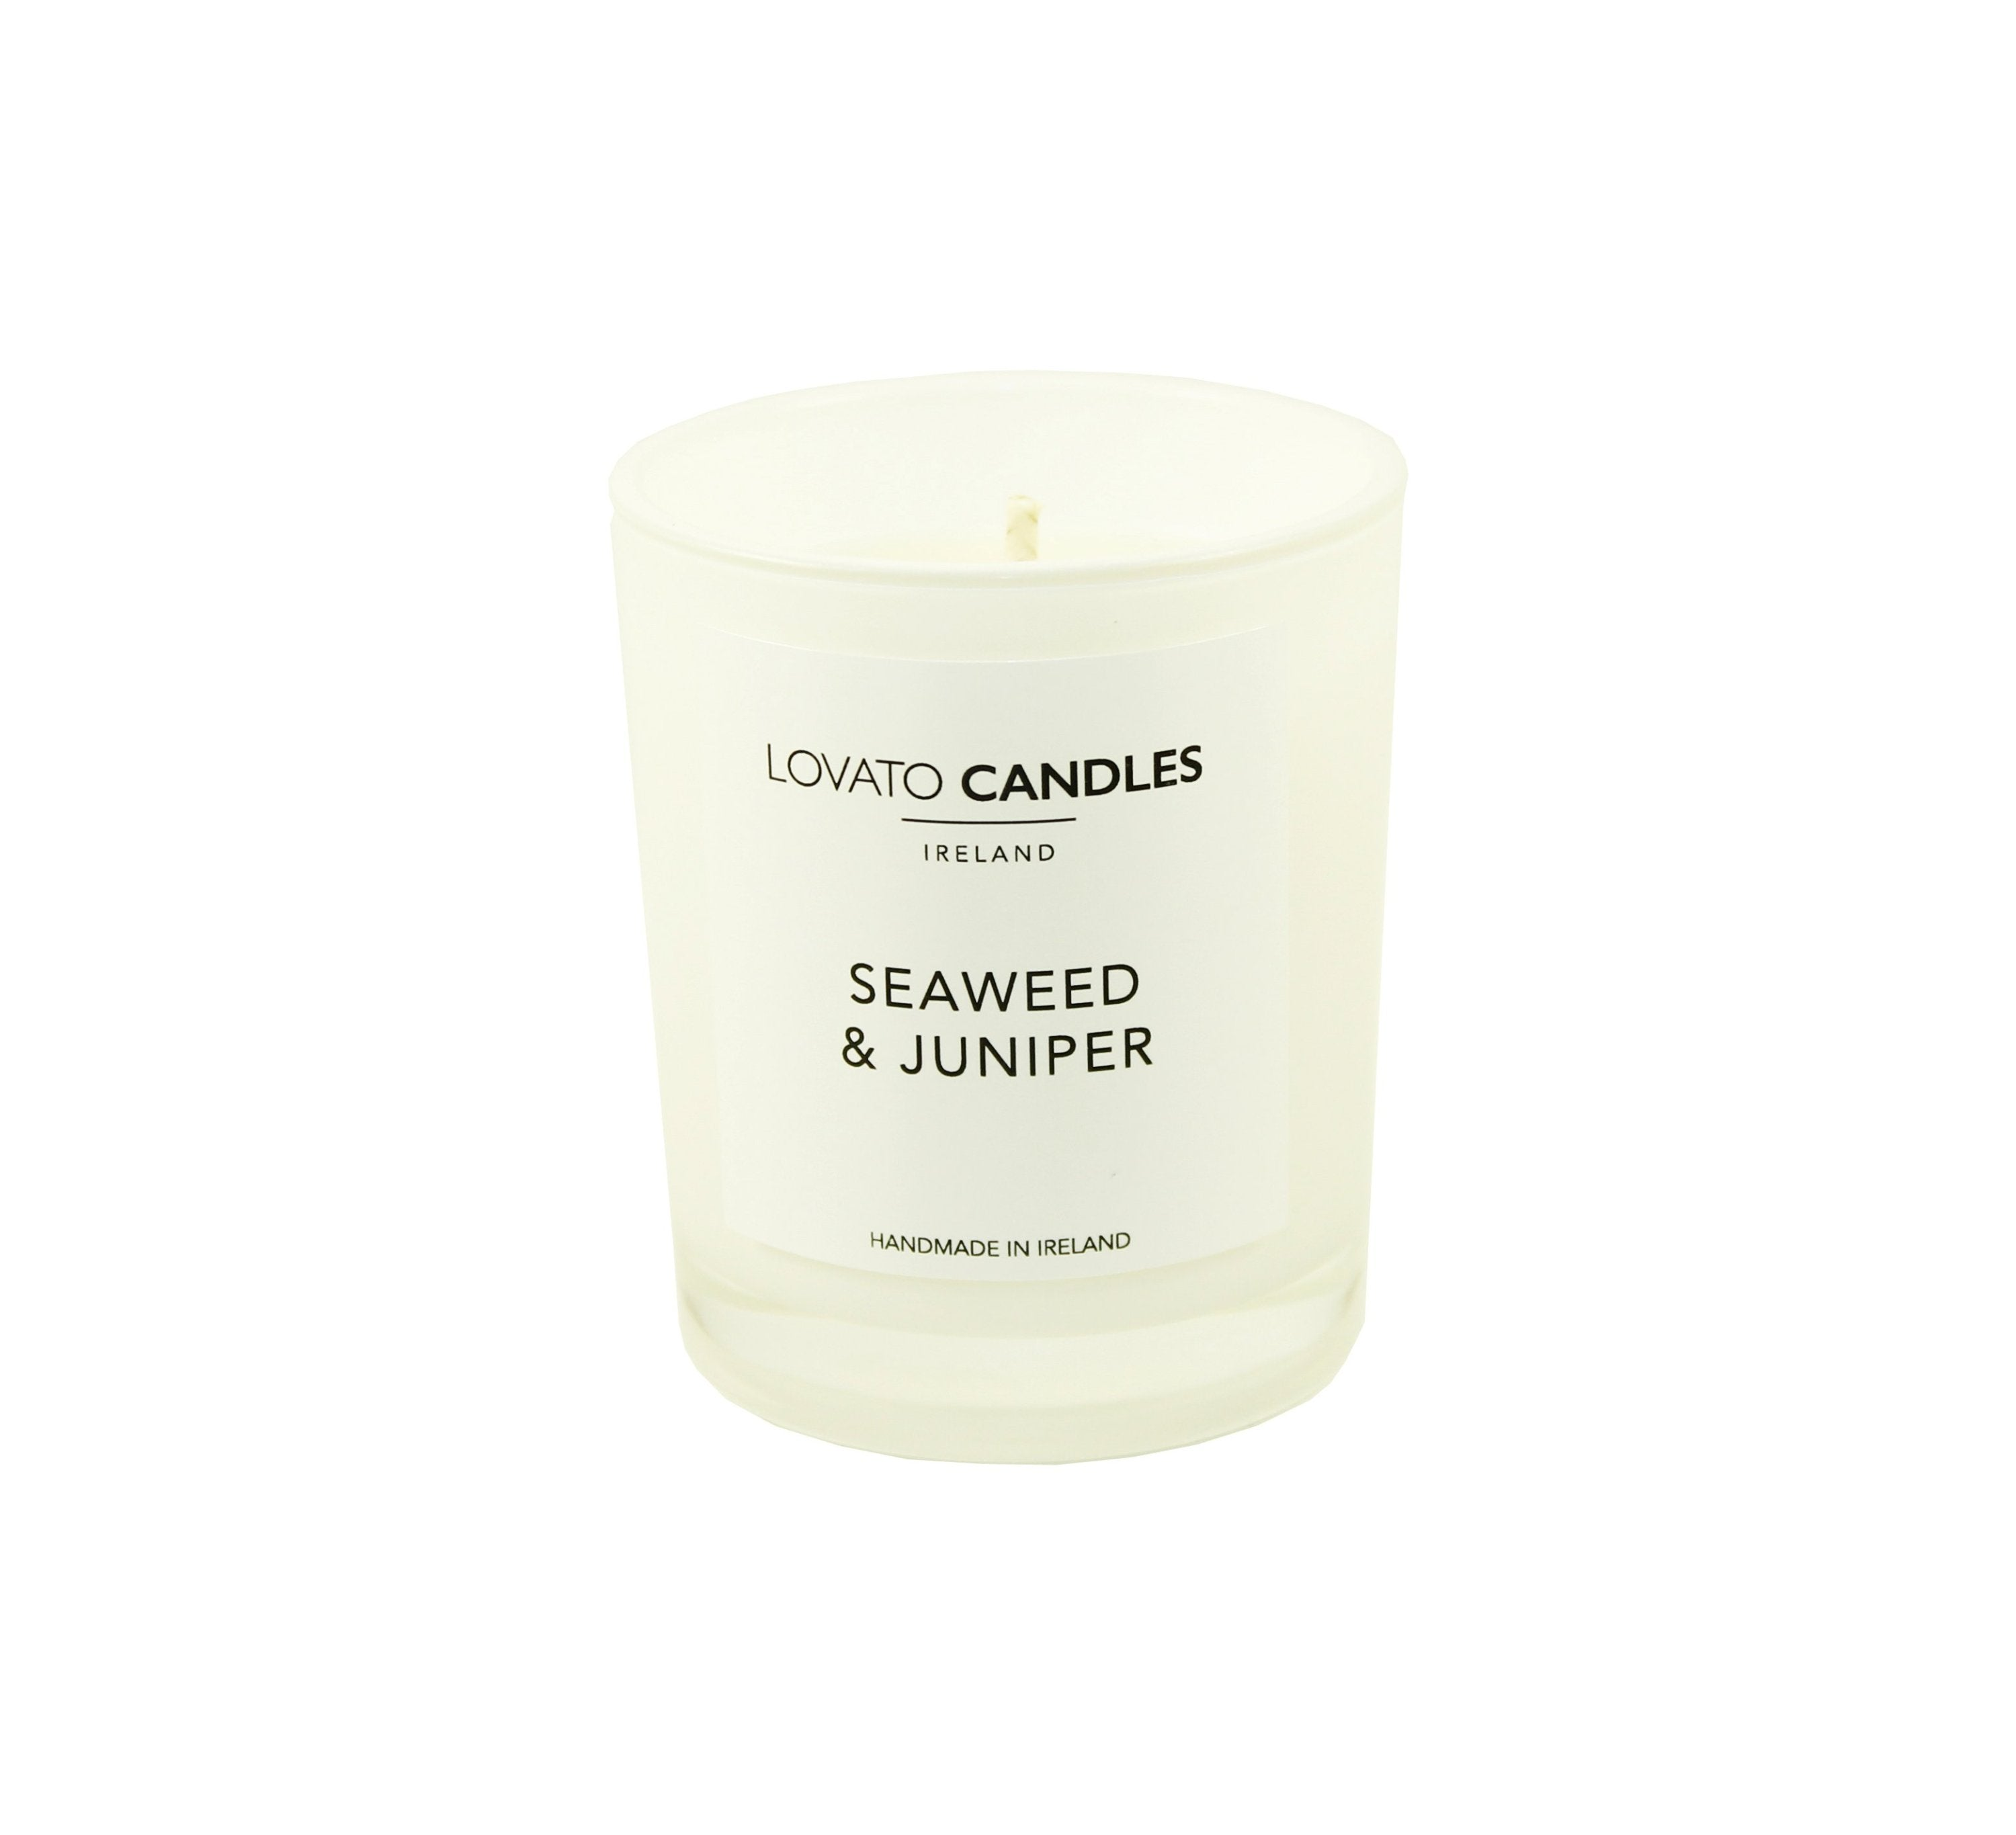 White Votive Candle - Seaweed & Juniper - Lovato Candles